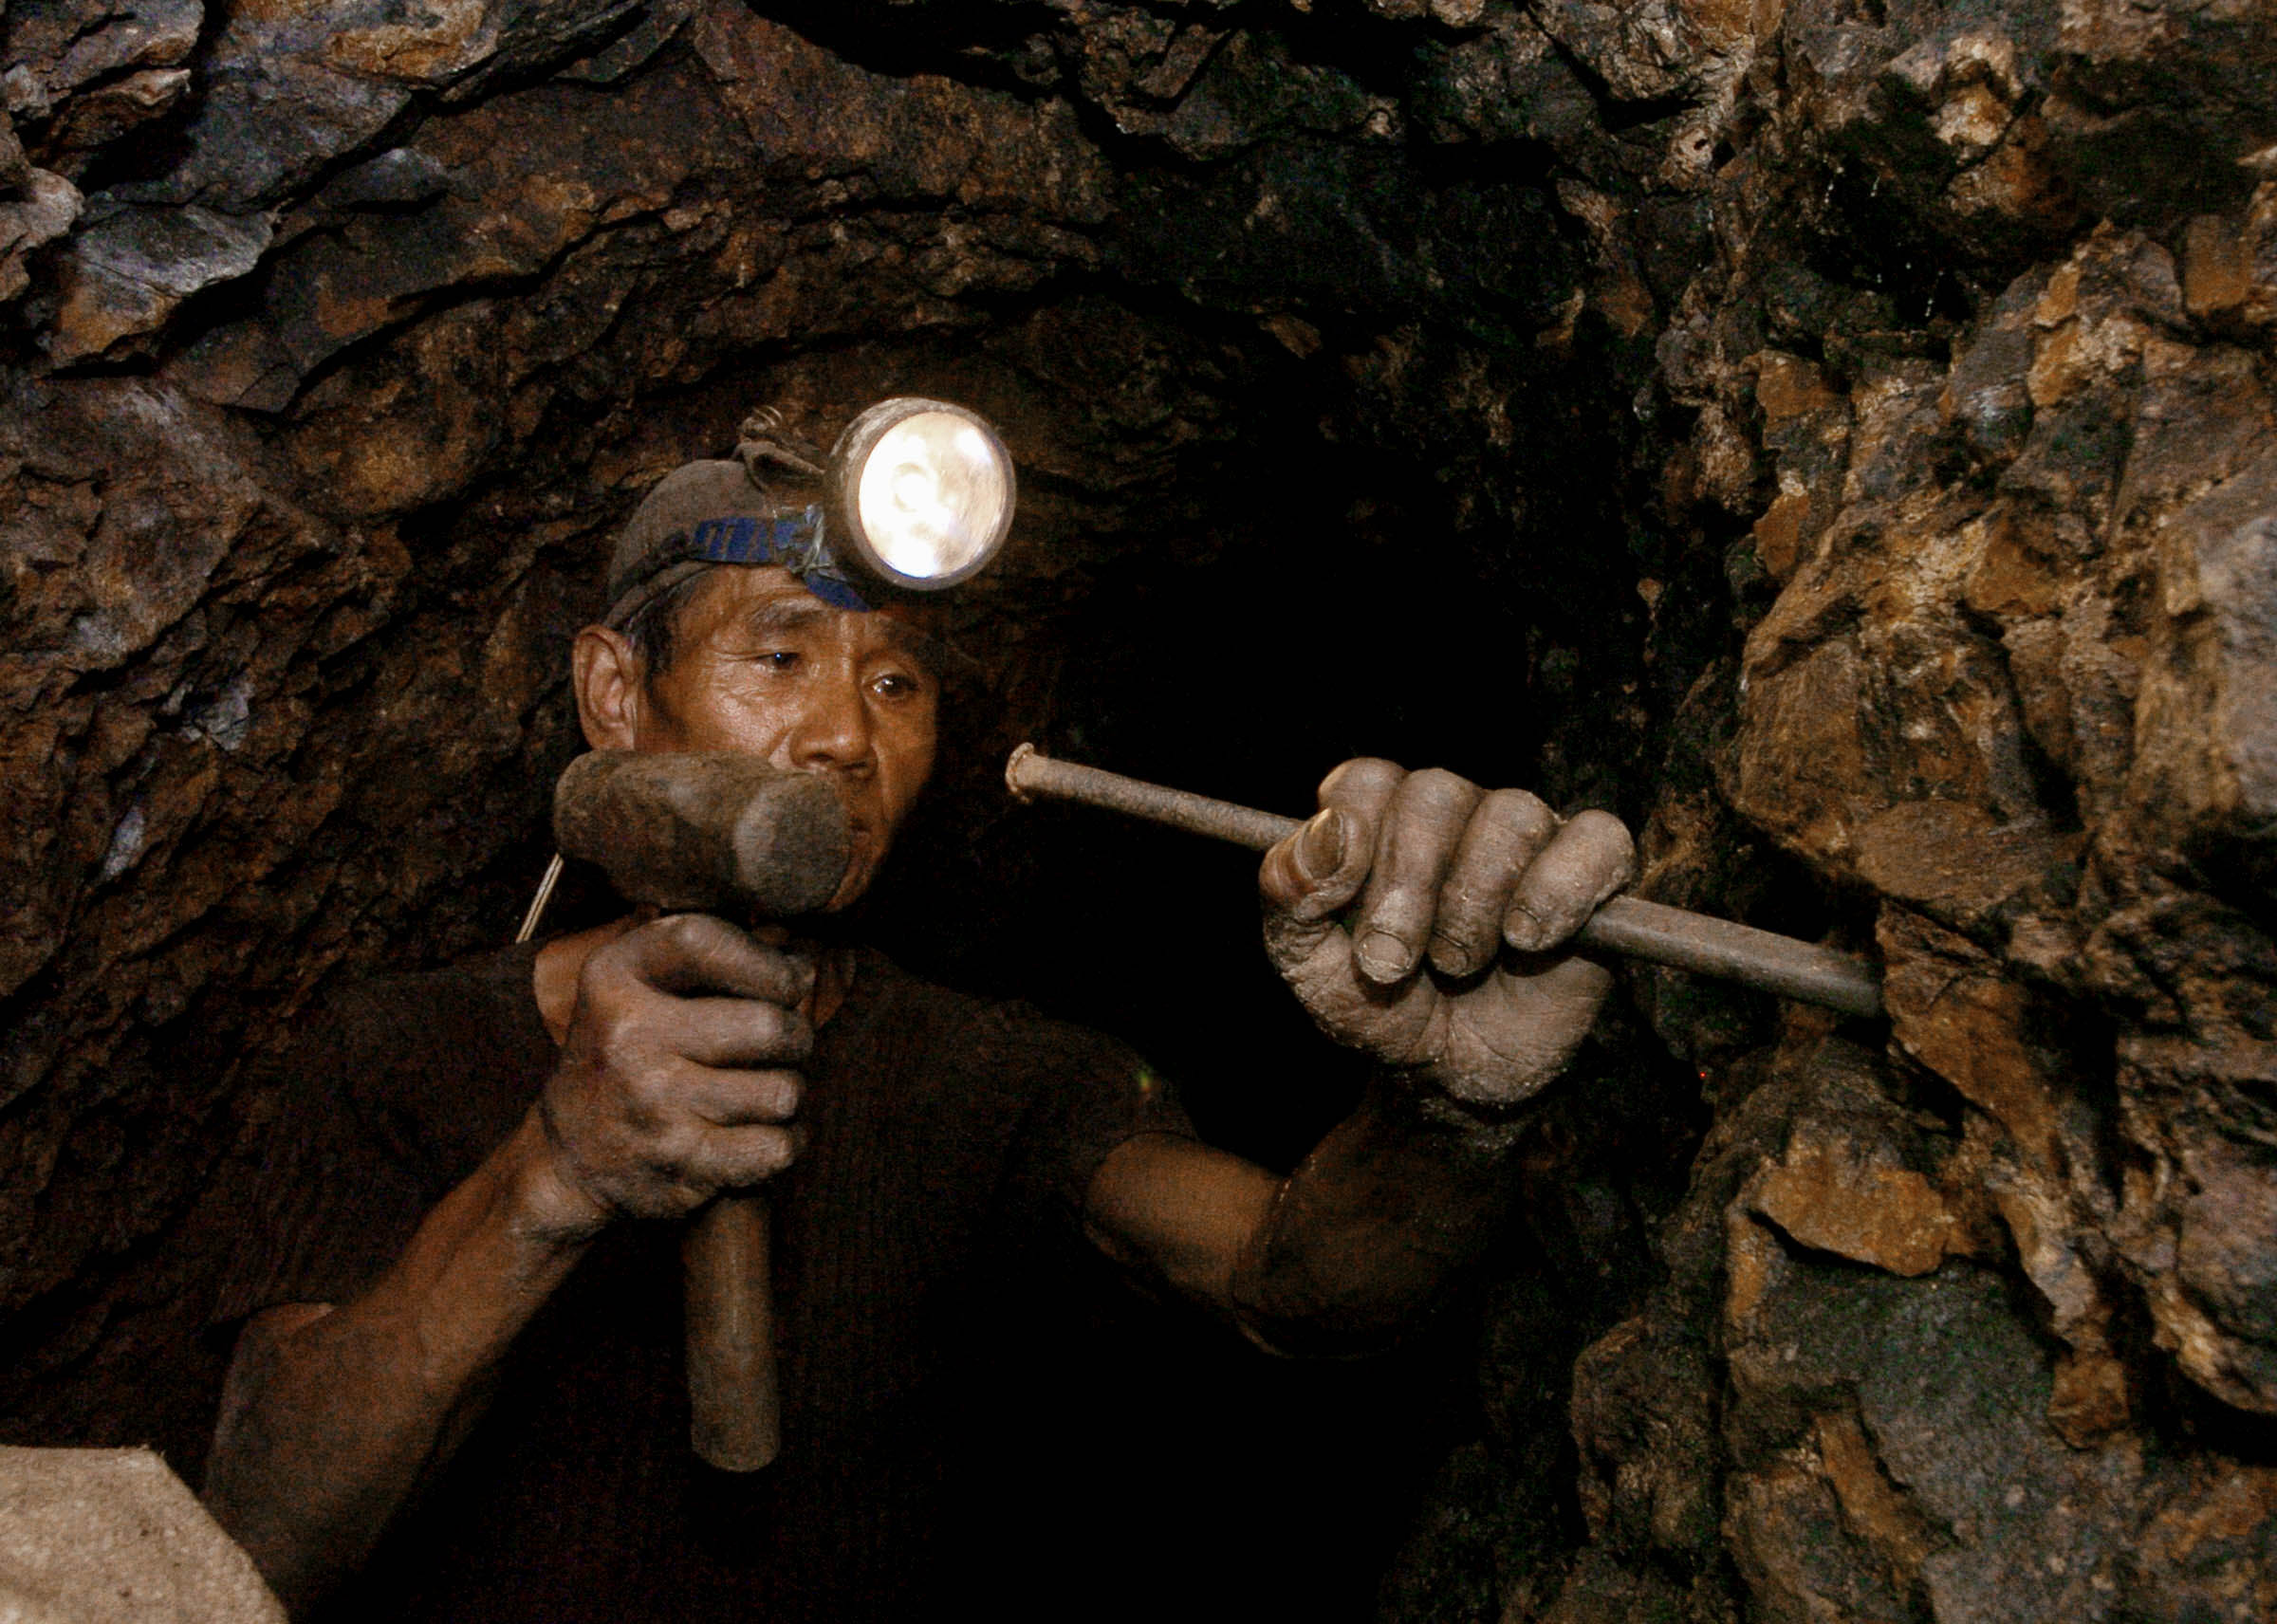 A worker hammers gold ore inside a mine